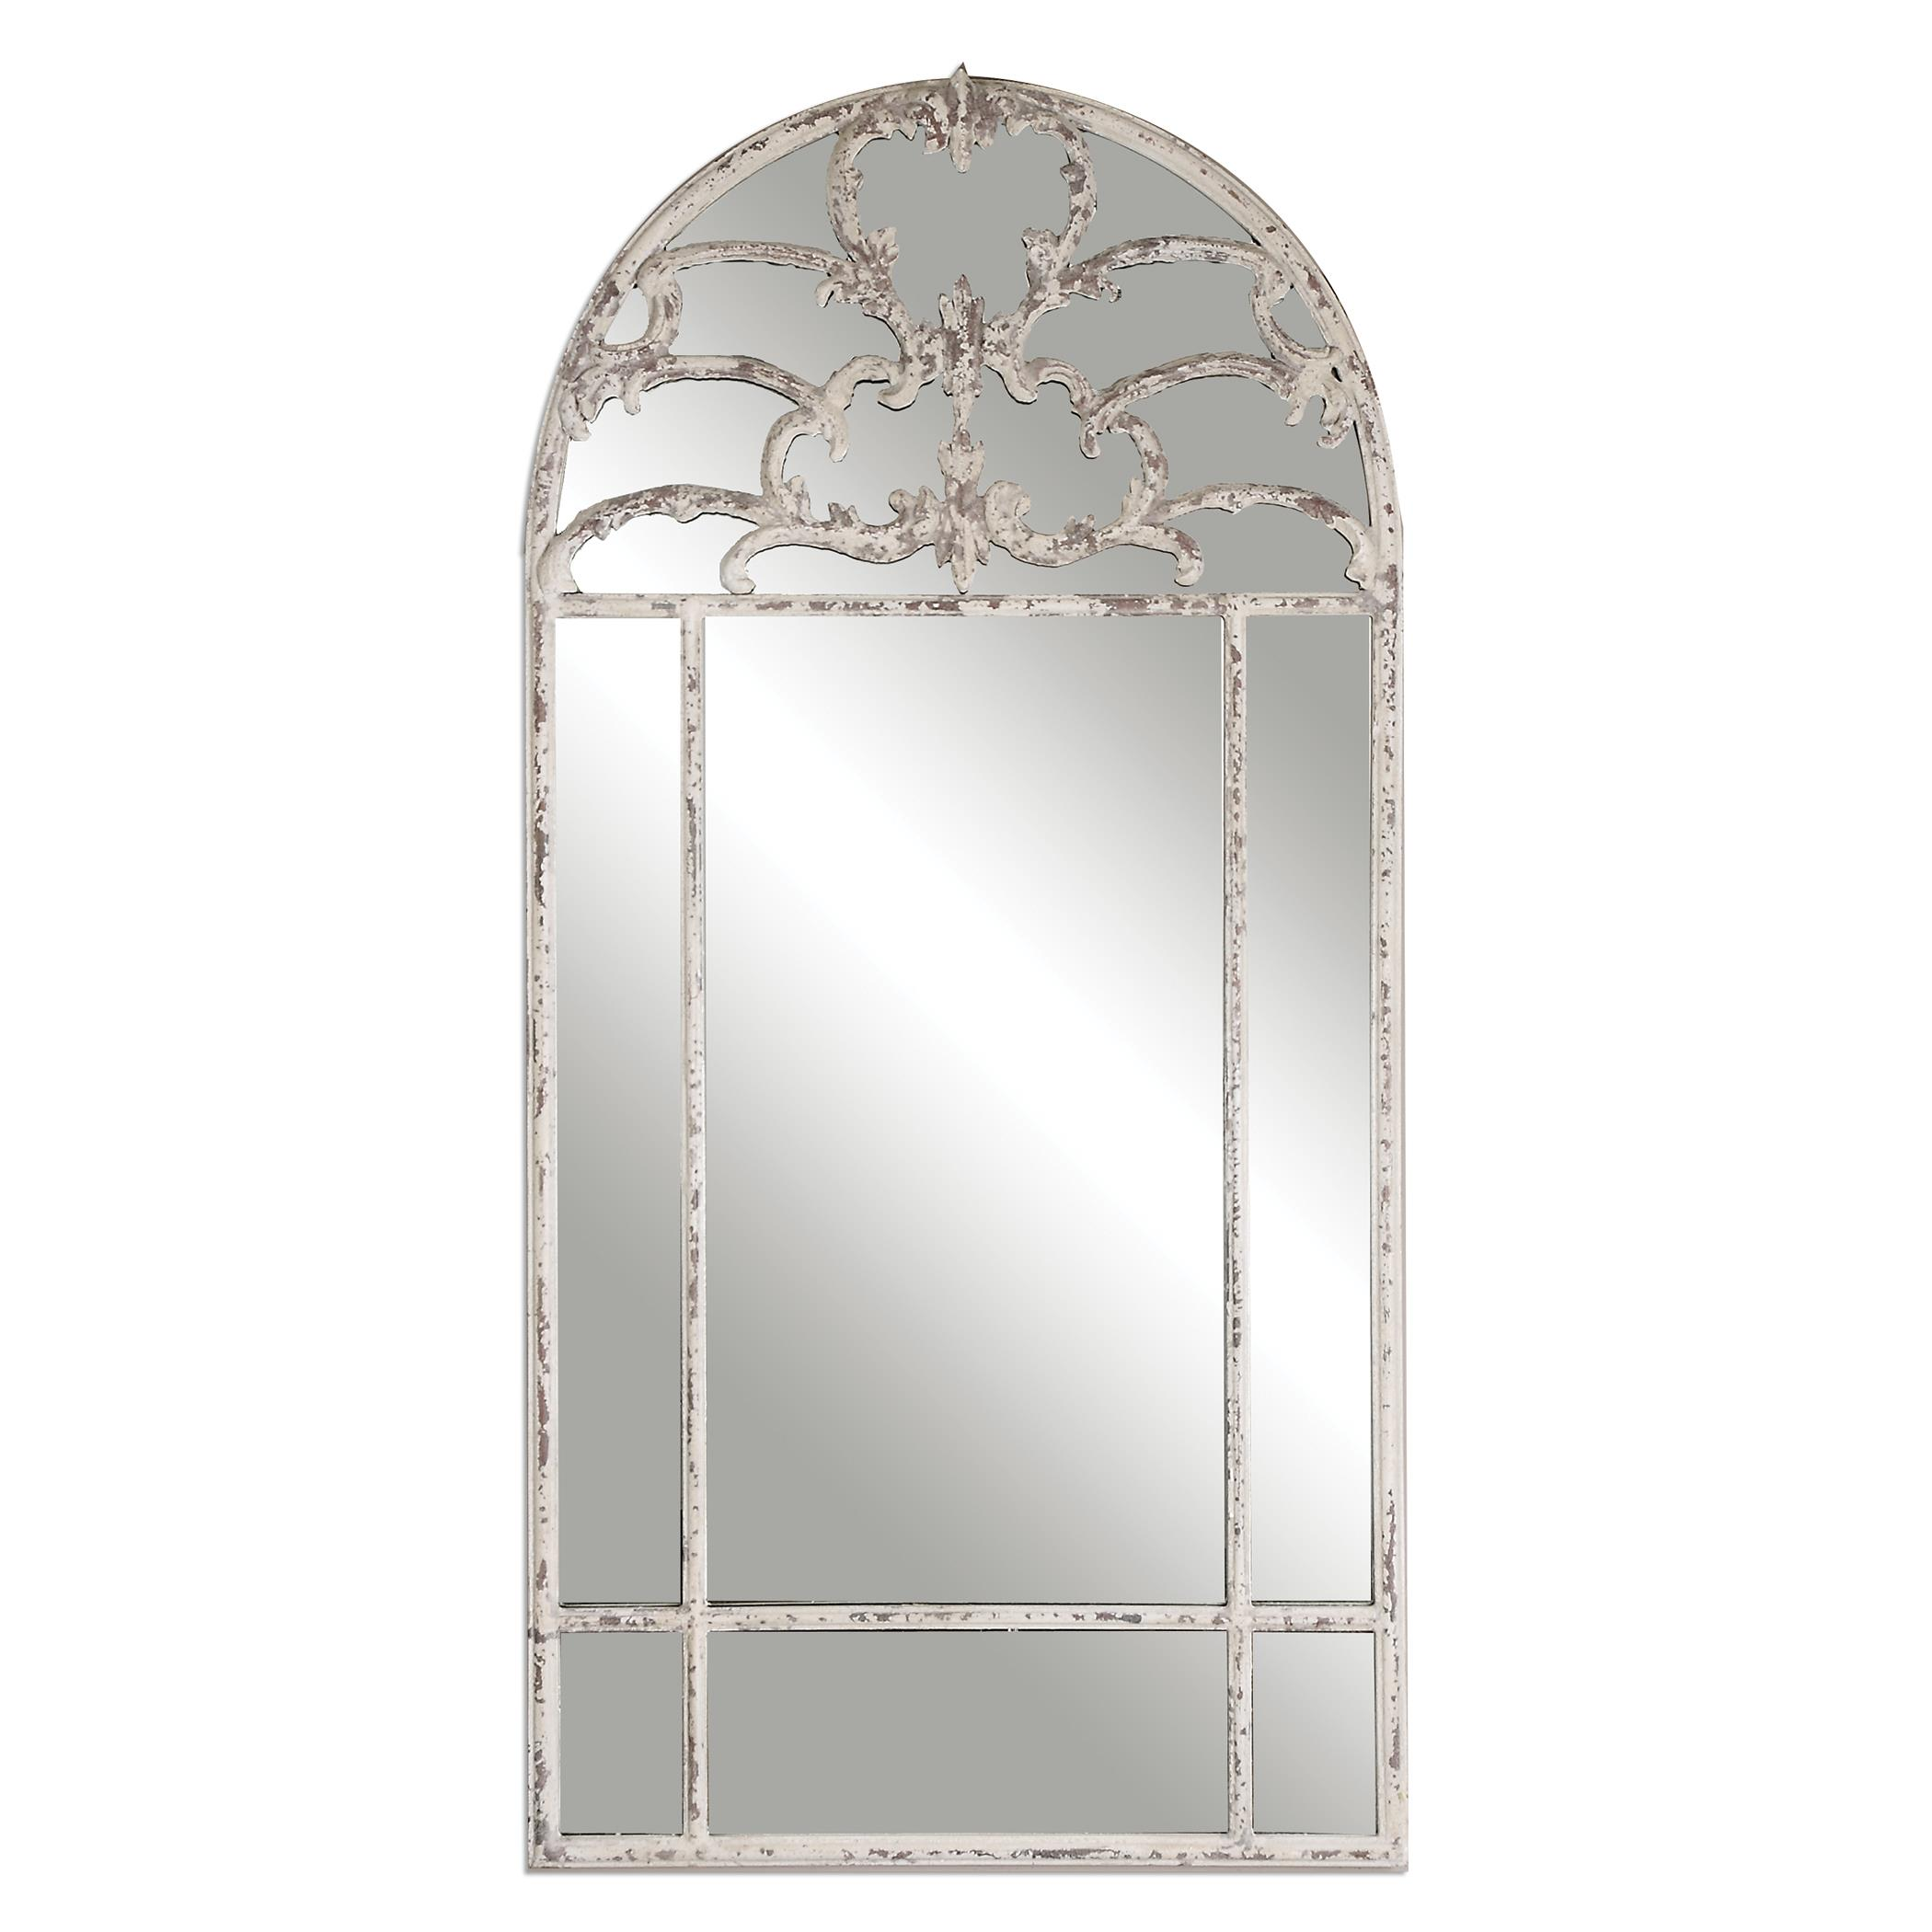 Uttermost Mirrors Gavarresa Arched Metal Mirror - Item Number: 12927